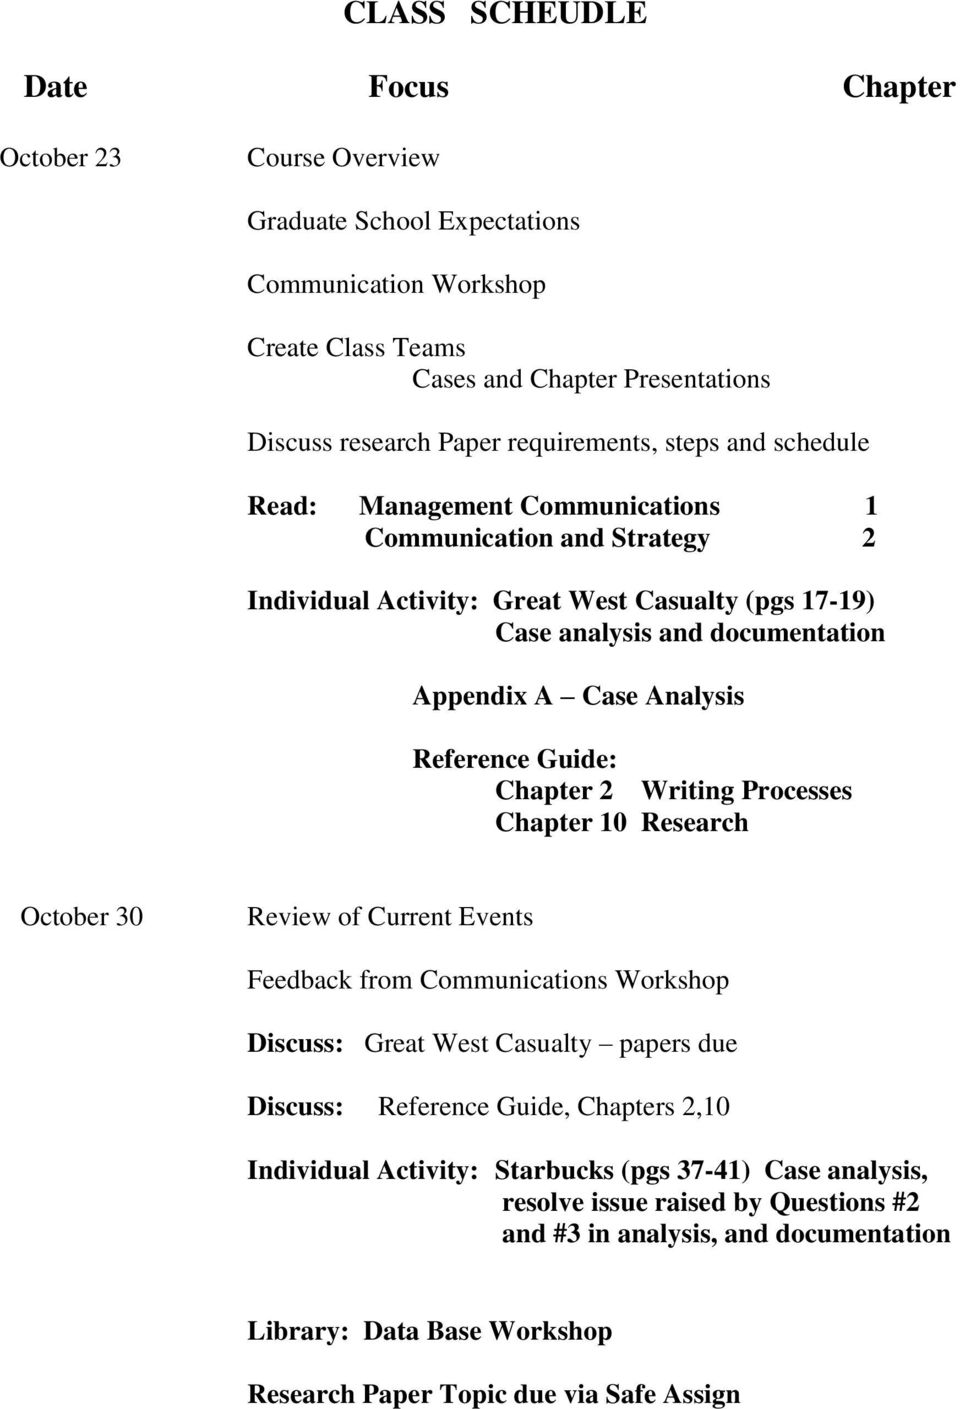 Analysis Reference Guide: Chapter 2 Writing Processes Chapter 10 Research October 30 Review of Current Events Feedback from Communications Workshop Discuss: Great West Casualty papers due Discuss: